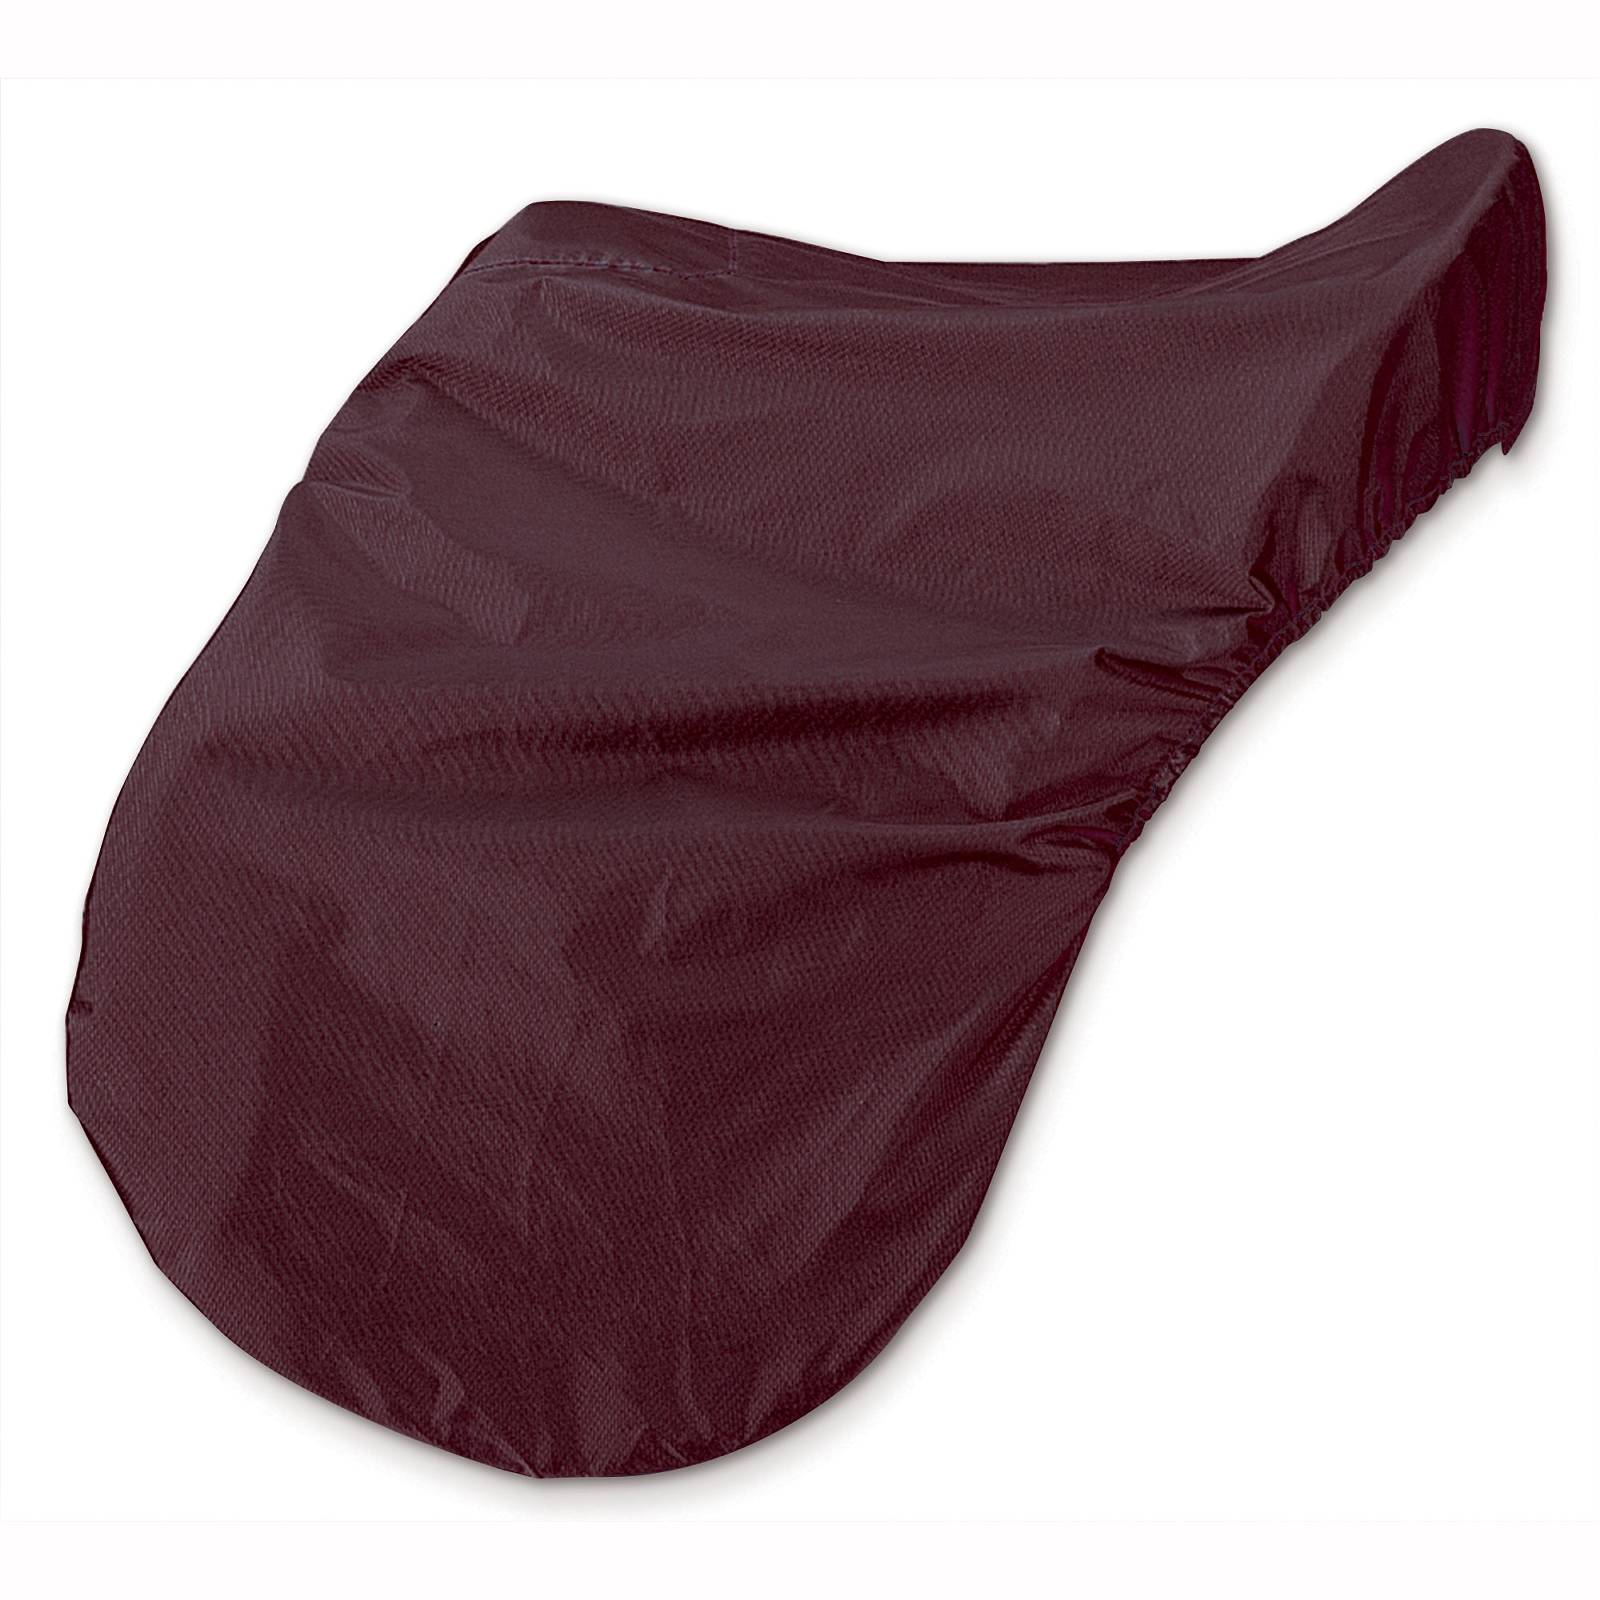 Toklat Foldaway Nylon English Saddle Cover - General Purpose